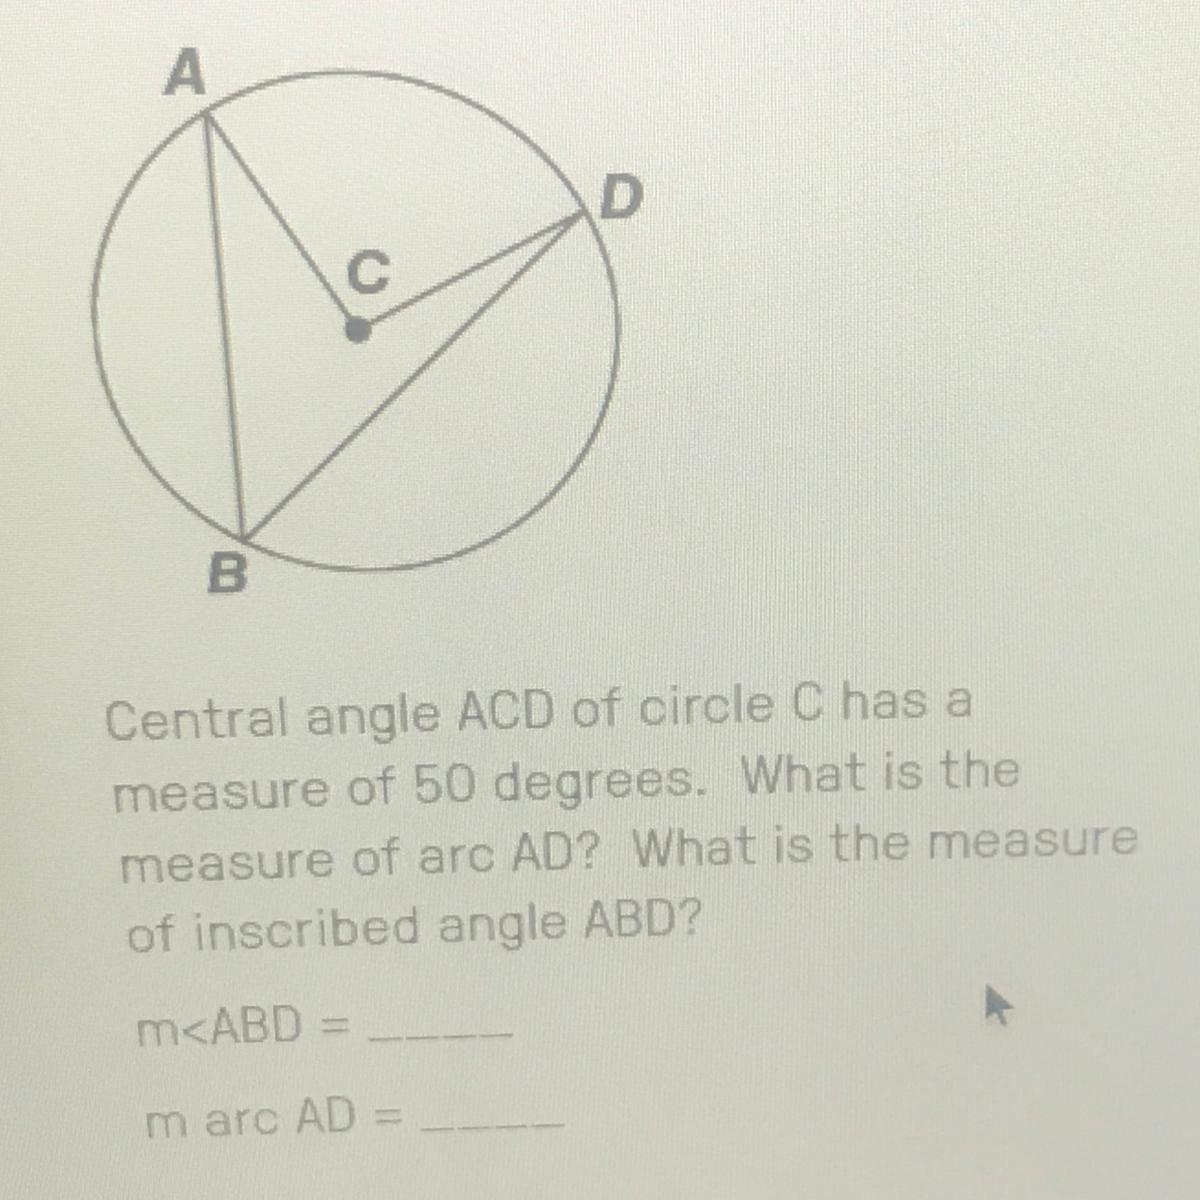 Central Angle Acd Of Circle C Has A Measure Of 50 Degrees